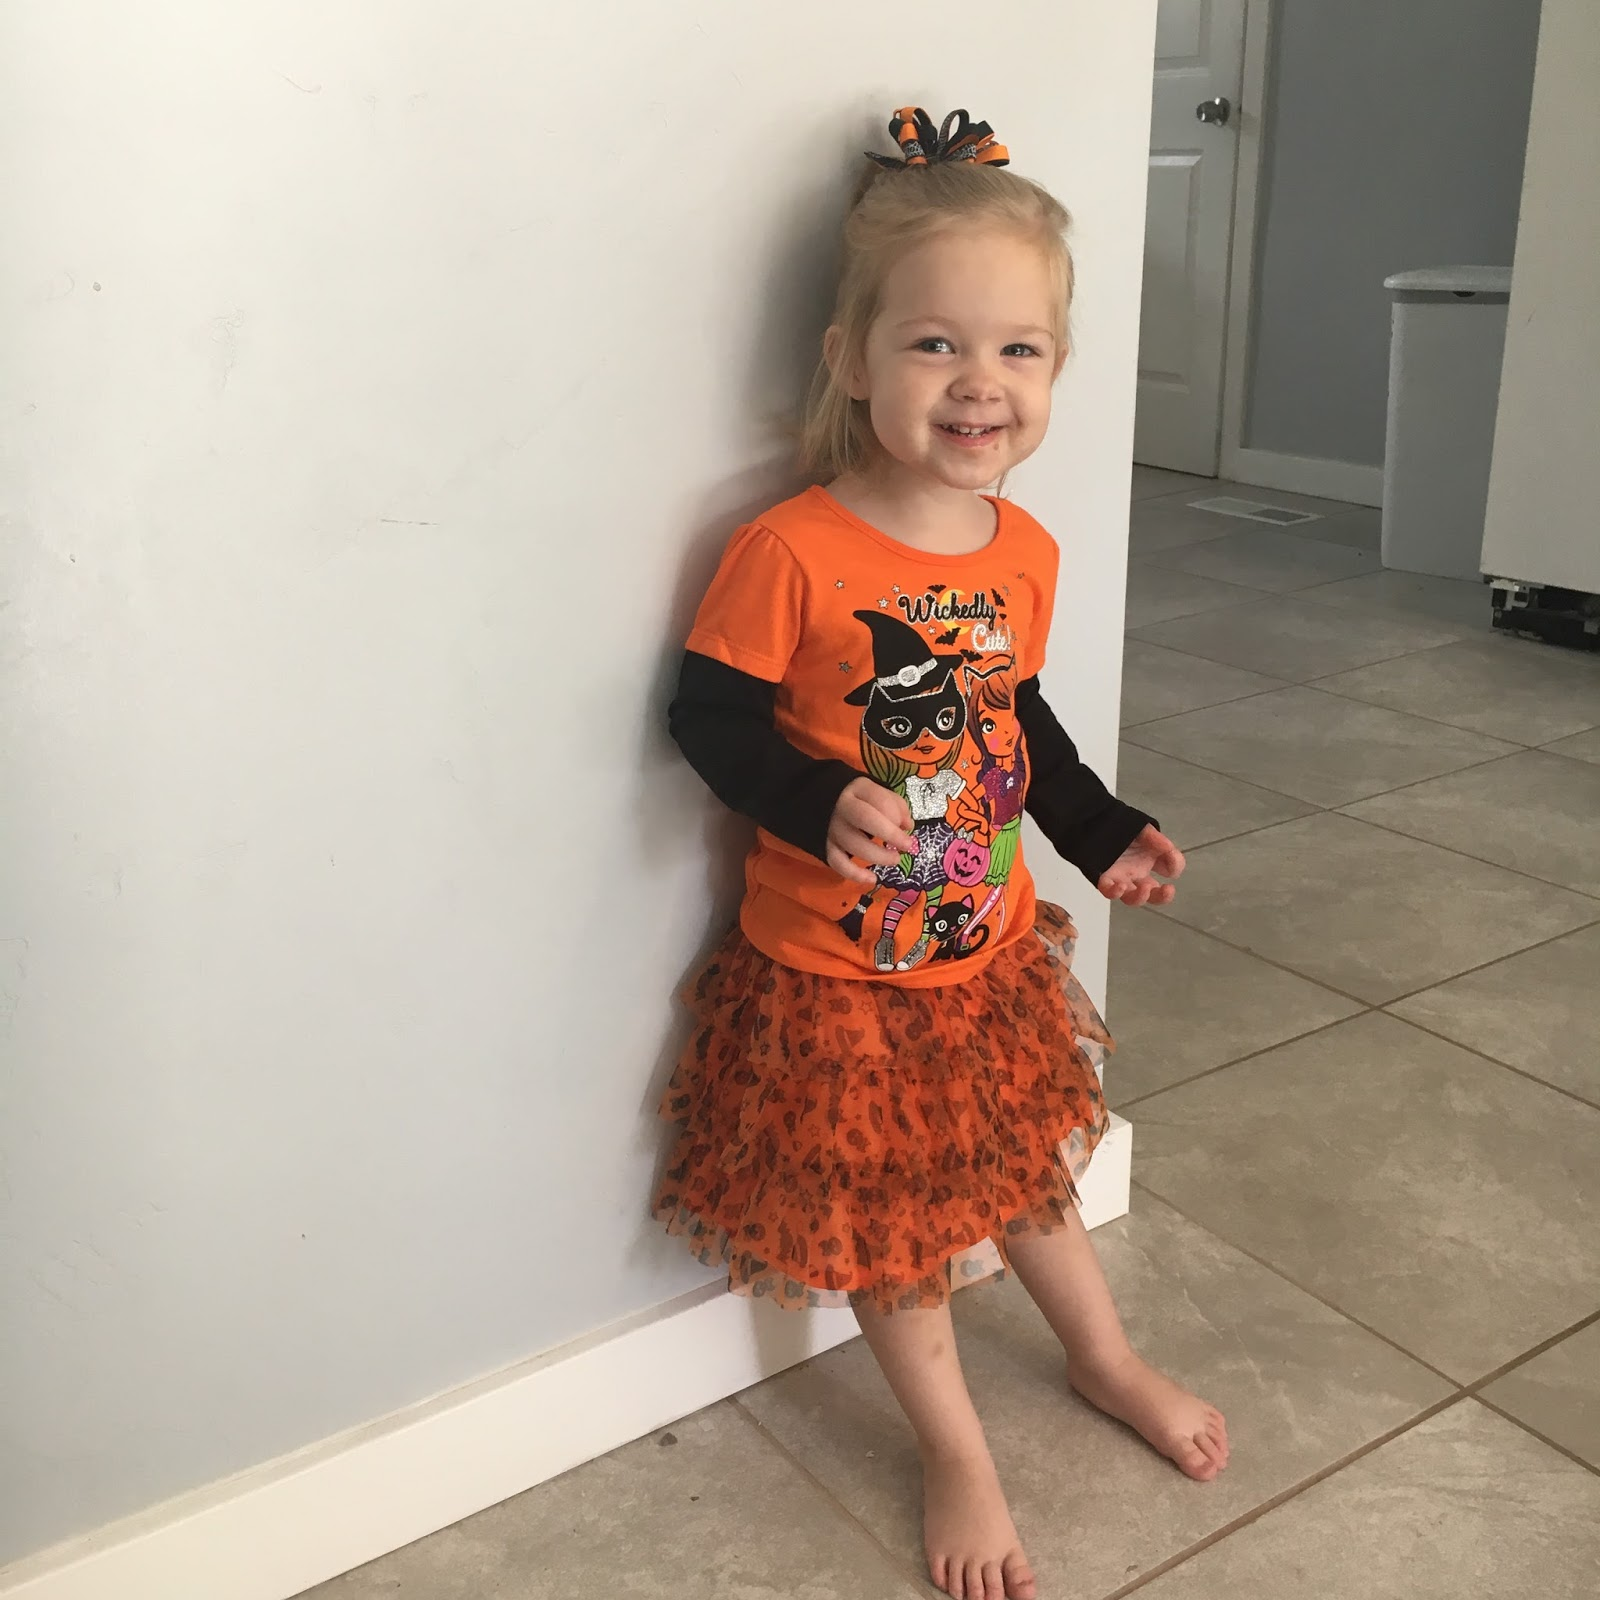 Outfit #5 This is what she wore to church and it was so cute! Dress Screaming Owl Pants Screaming Owl Bows Walmart  sc 1 st  The Holladay Life & The Holladay Life: Toddler Halloween Outfits